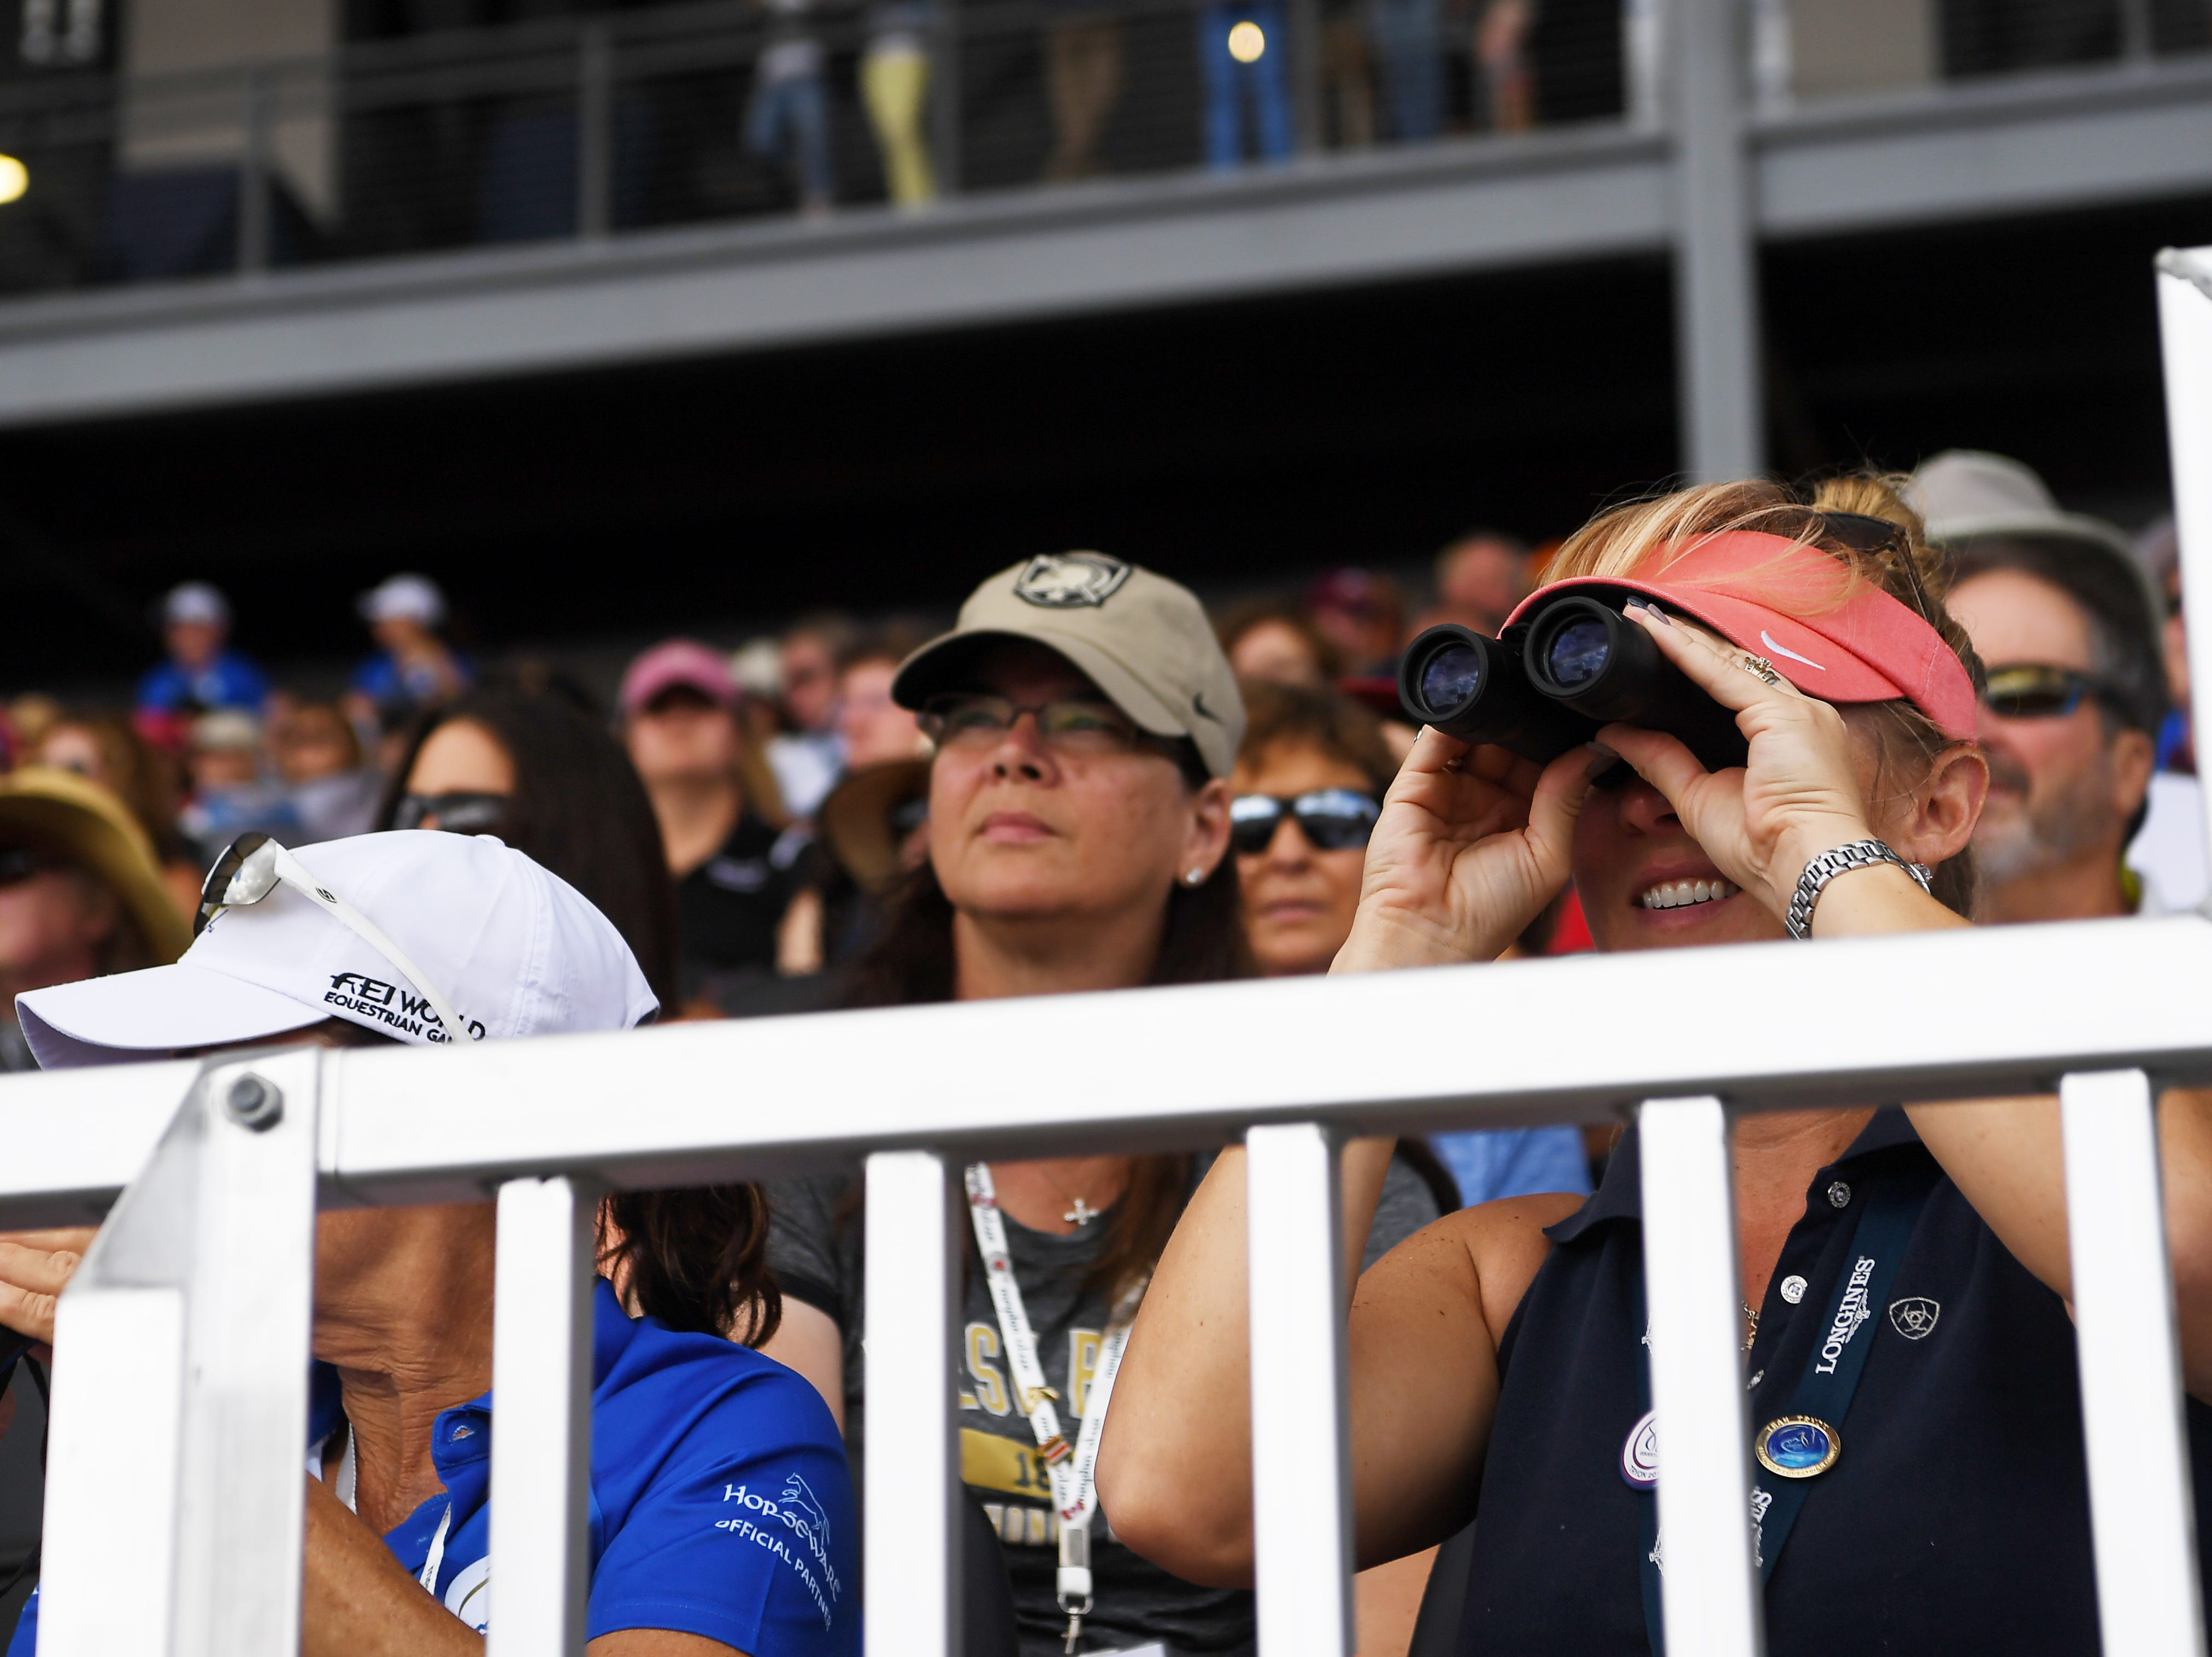 Spectators watch the dressage competition at the World Equestrian Games in Tryon Sept. 13, 2018.